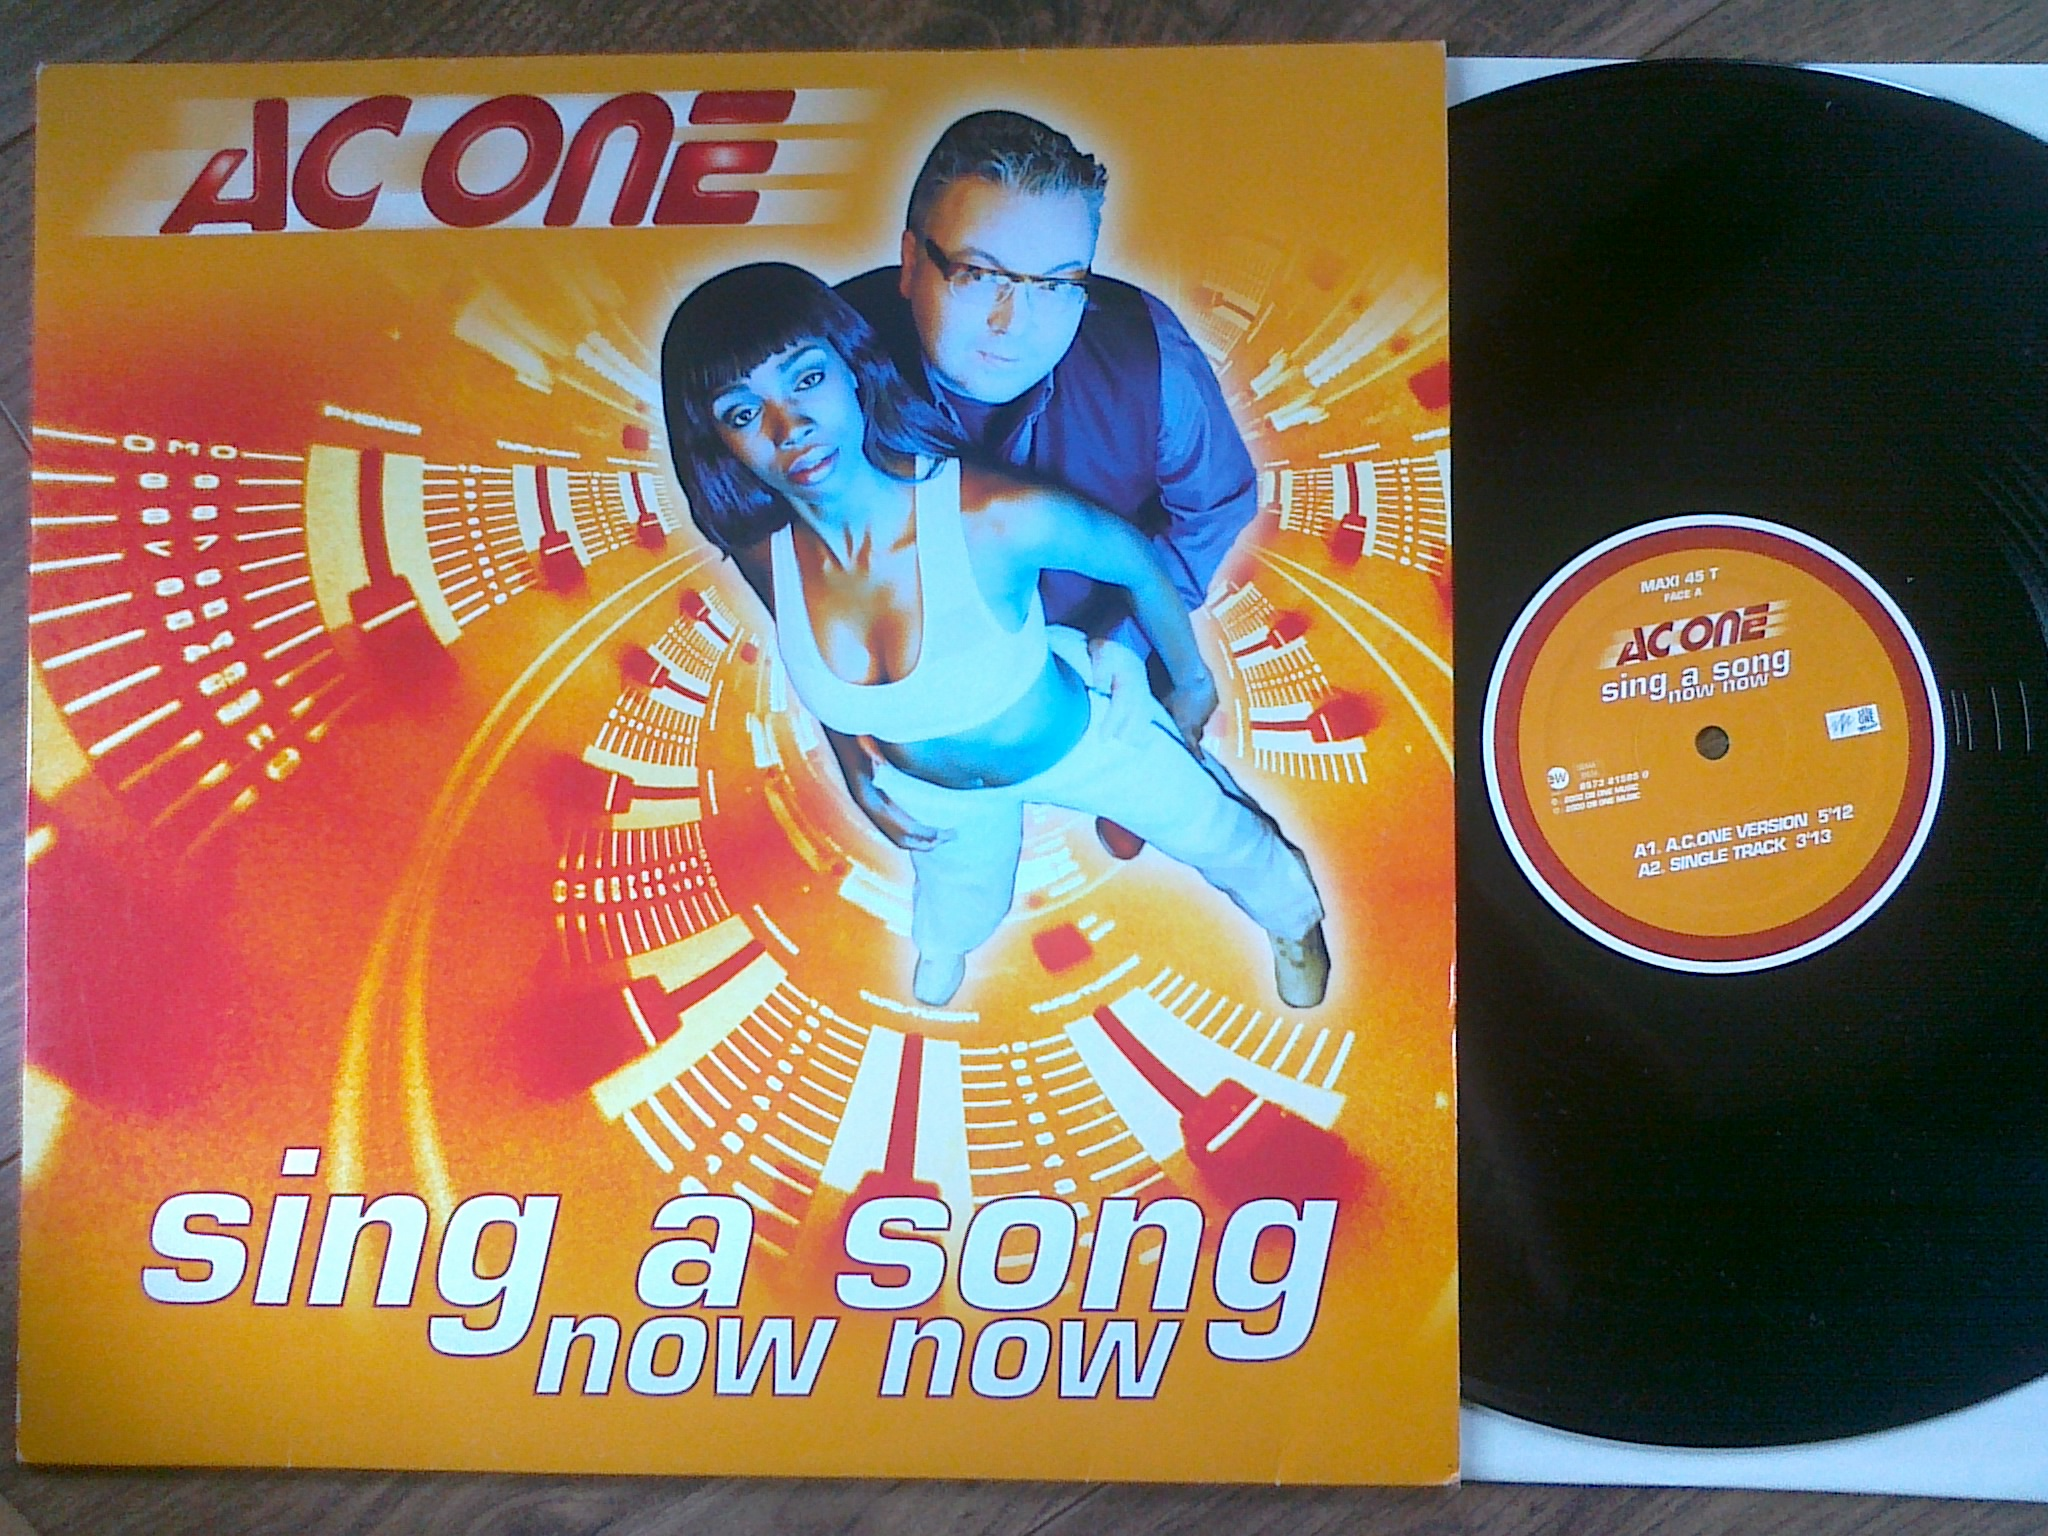 AC One - Sing a song